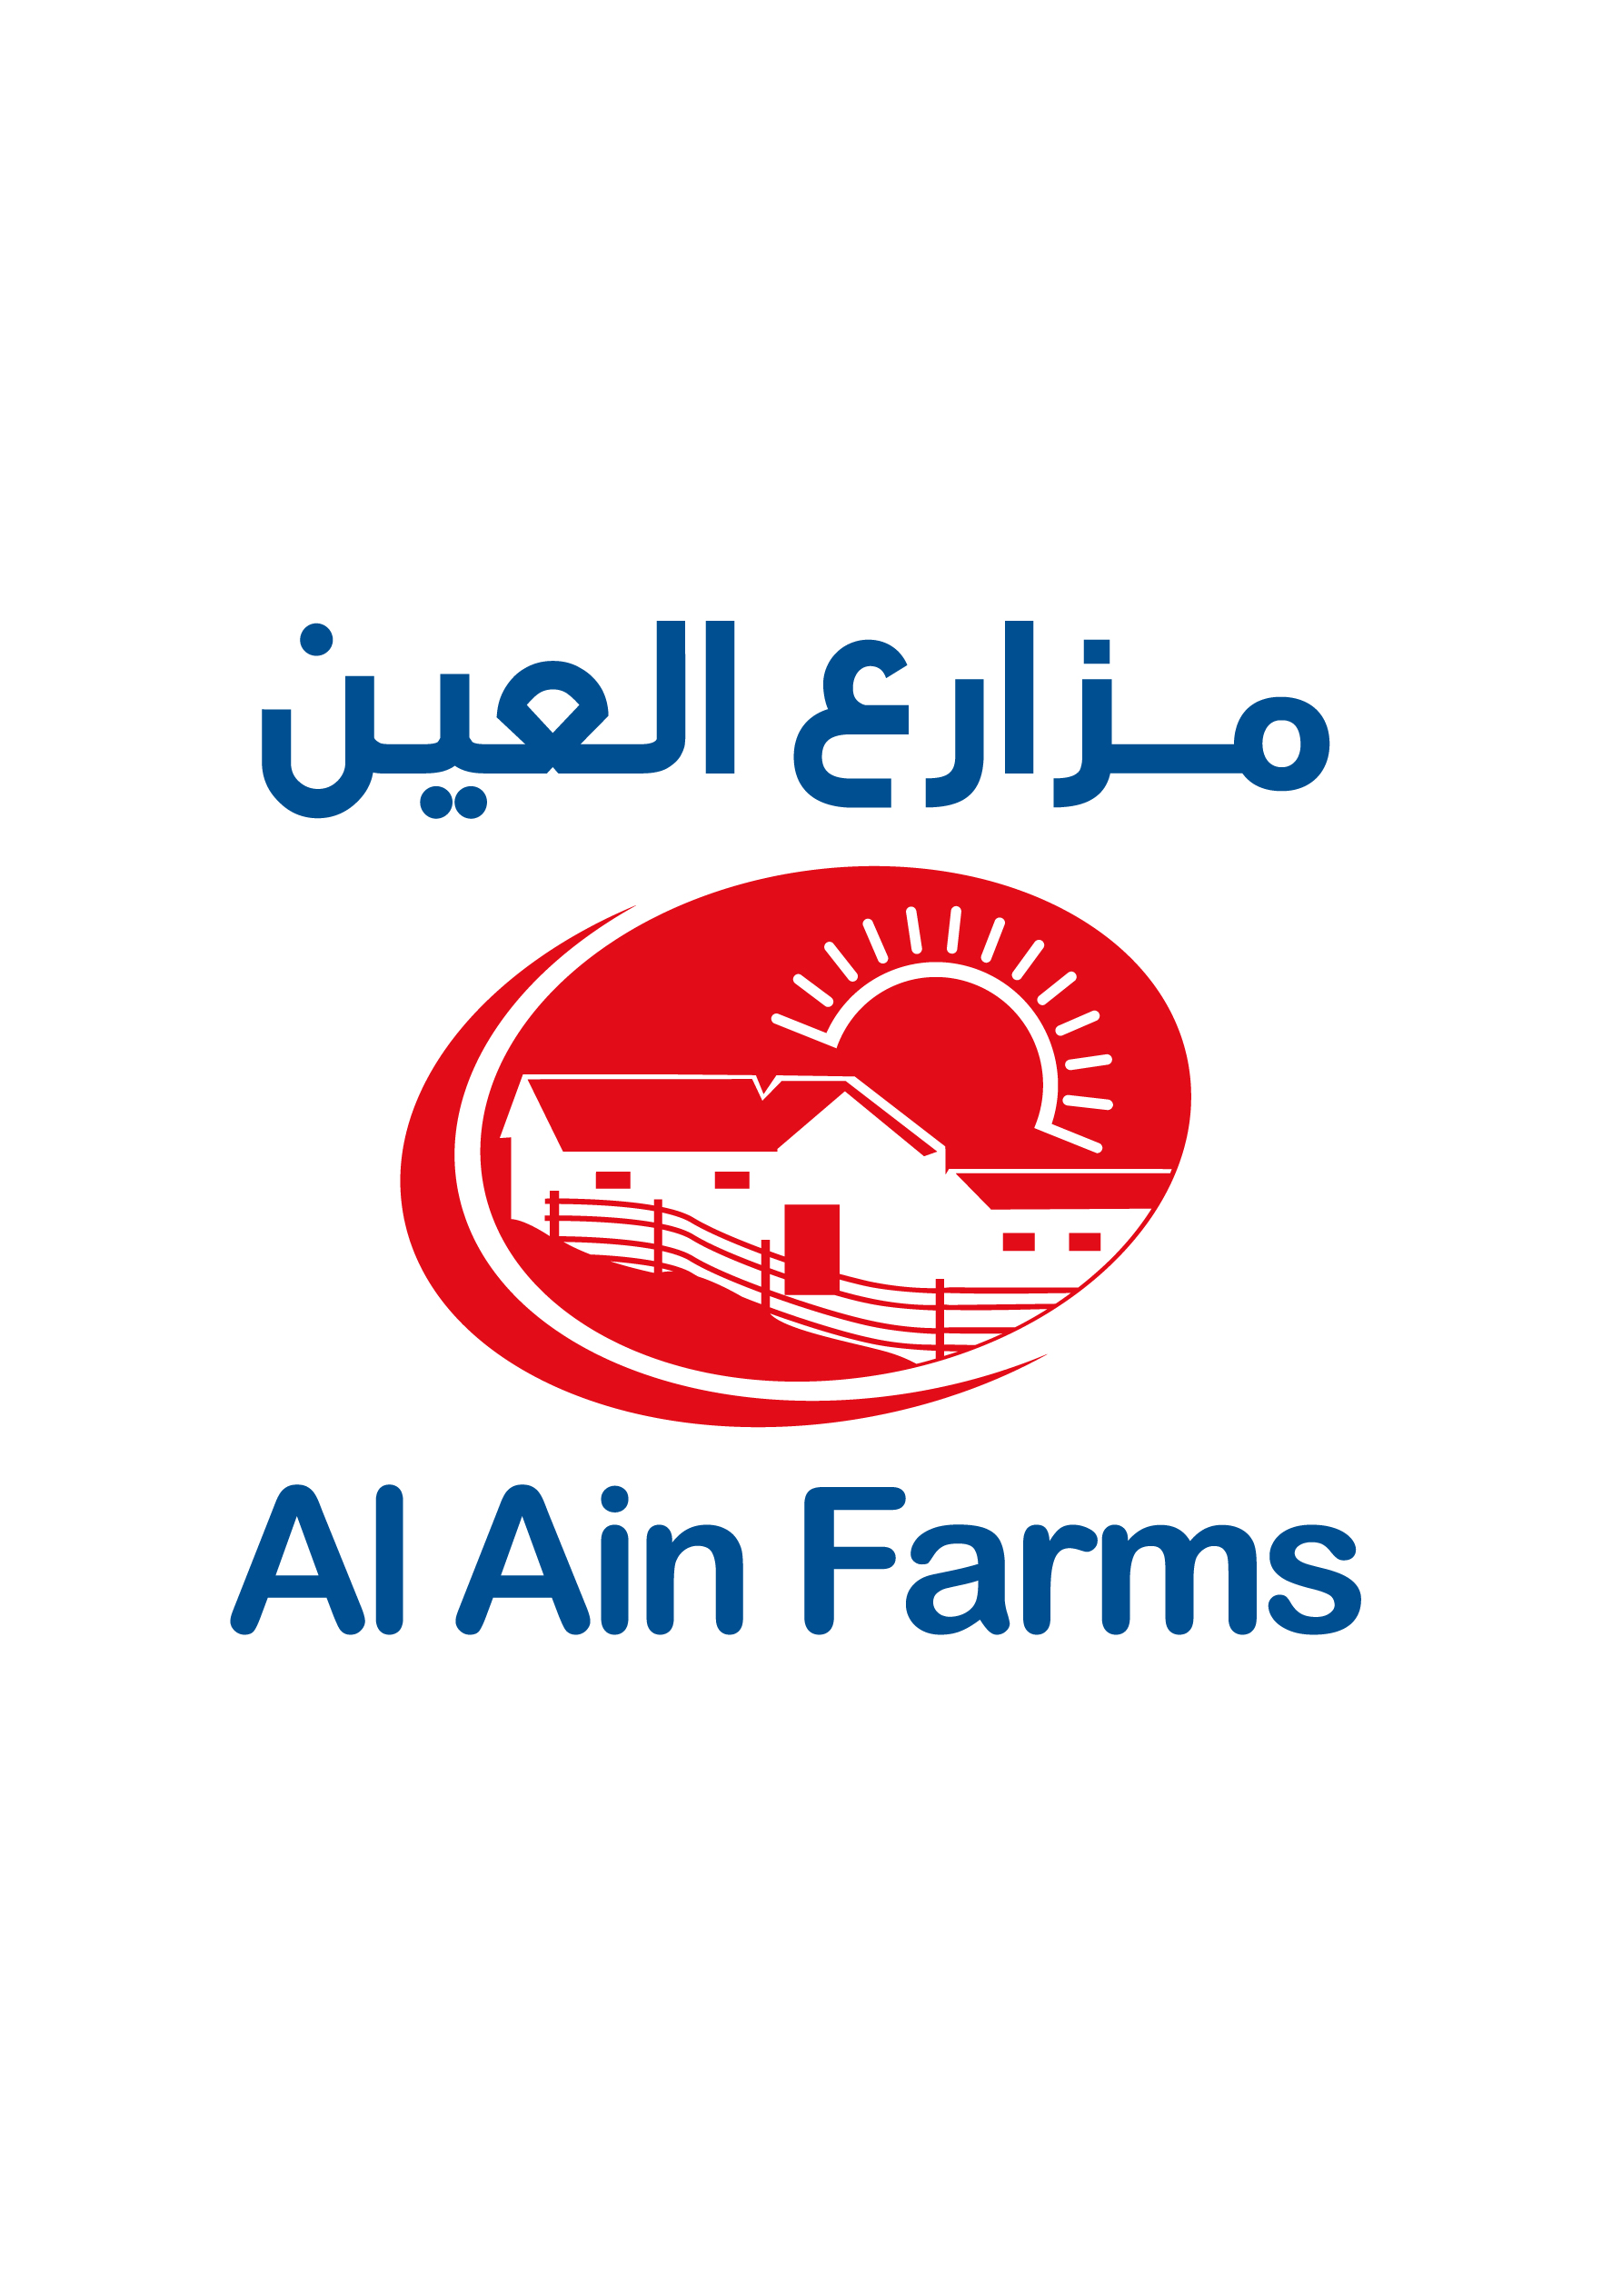 Al Ain Farms for Livestock Production